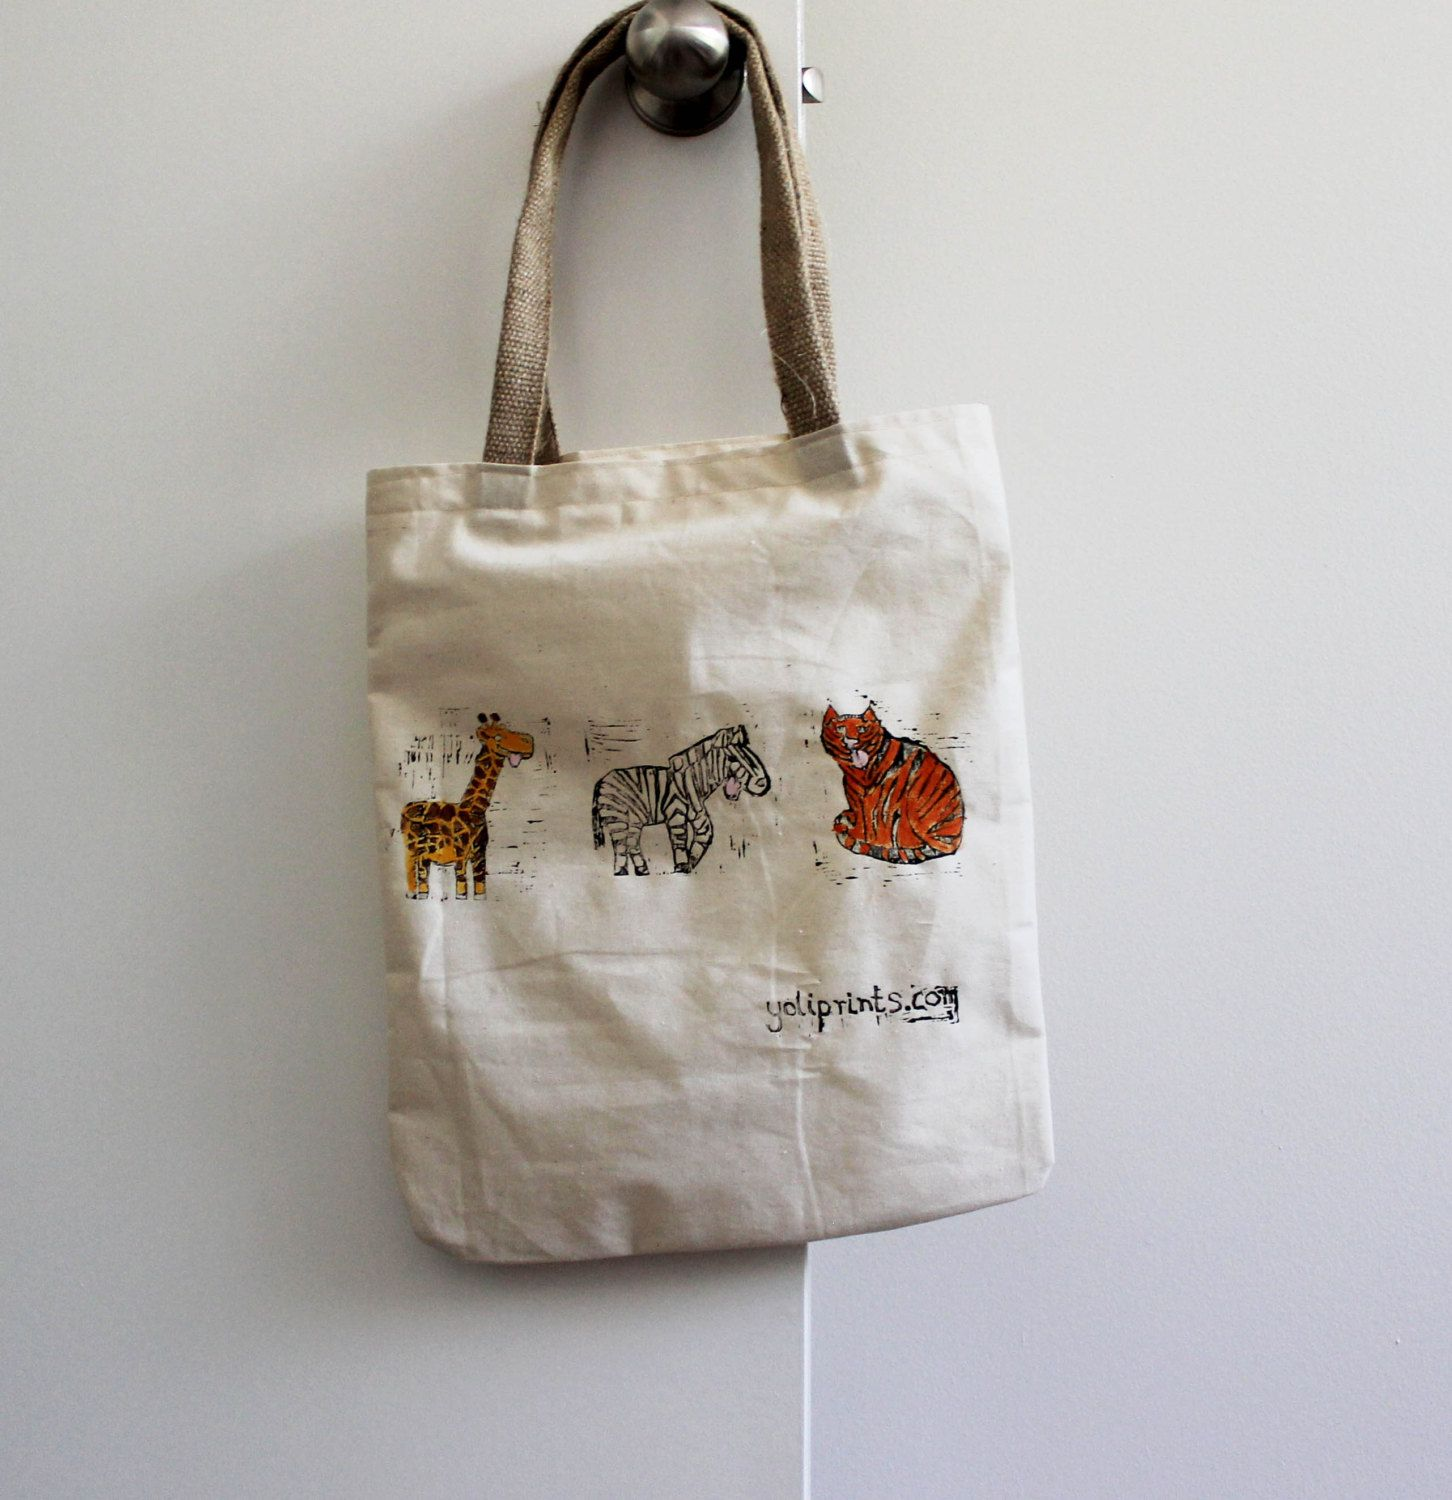 e8fb2b0afe Zoo animal tote bag by Yoliprints on Etsy